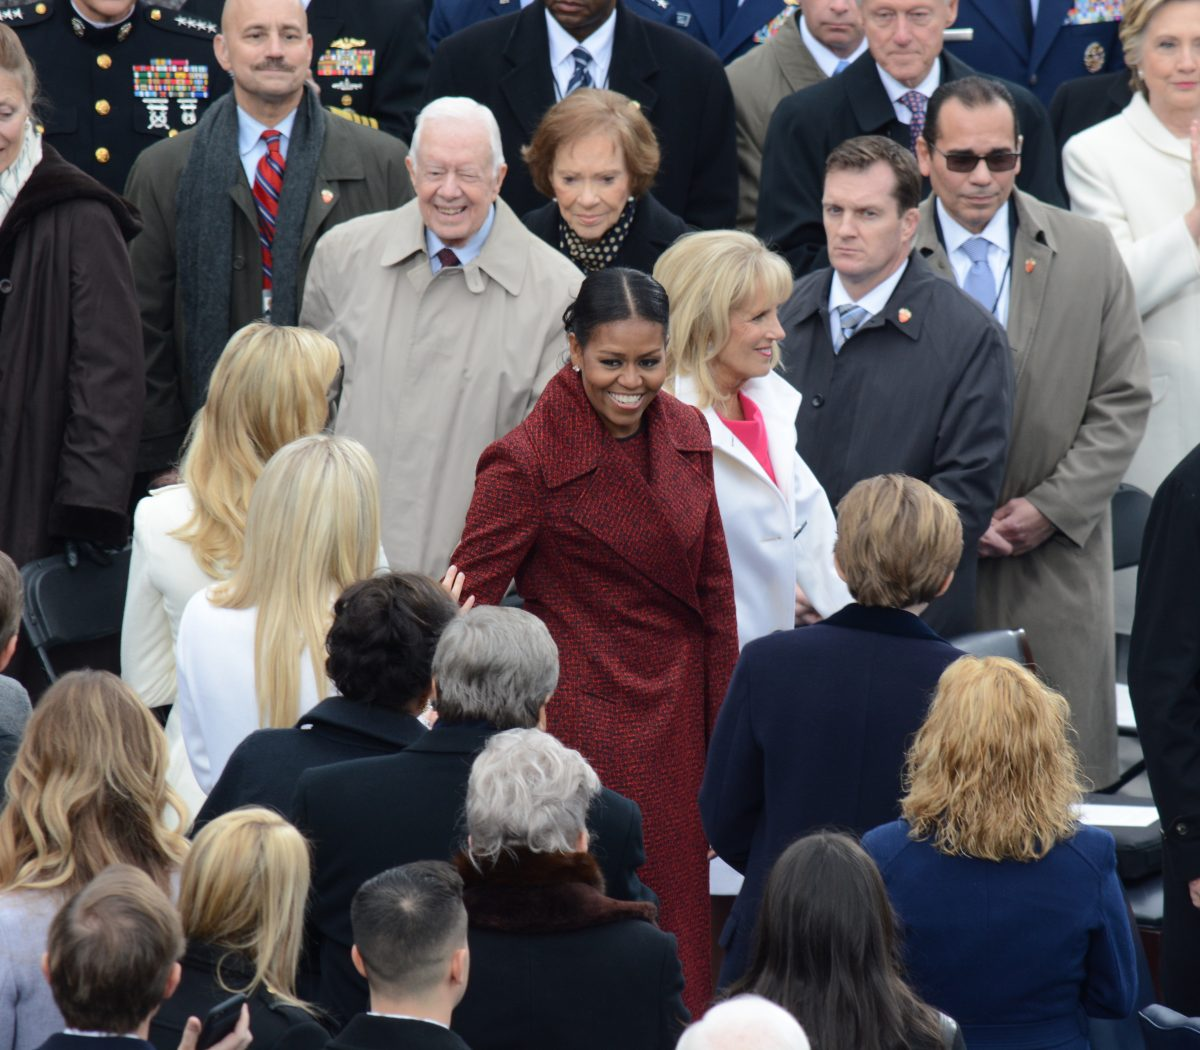 First Lady Michelle Obama and Dr. Jill Biden arrive at the 58th Presidential Inauguration on January 20, 2017. /Photo by Roy Lewis